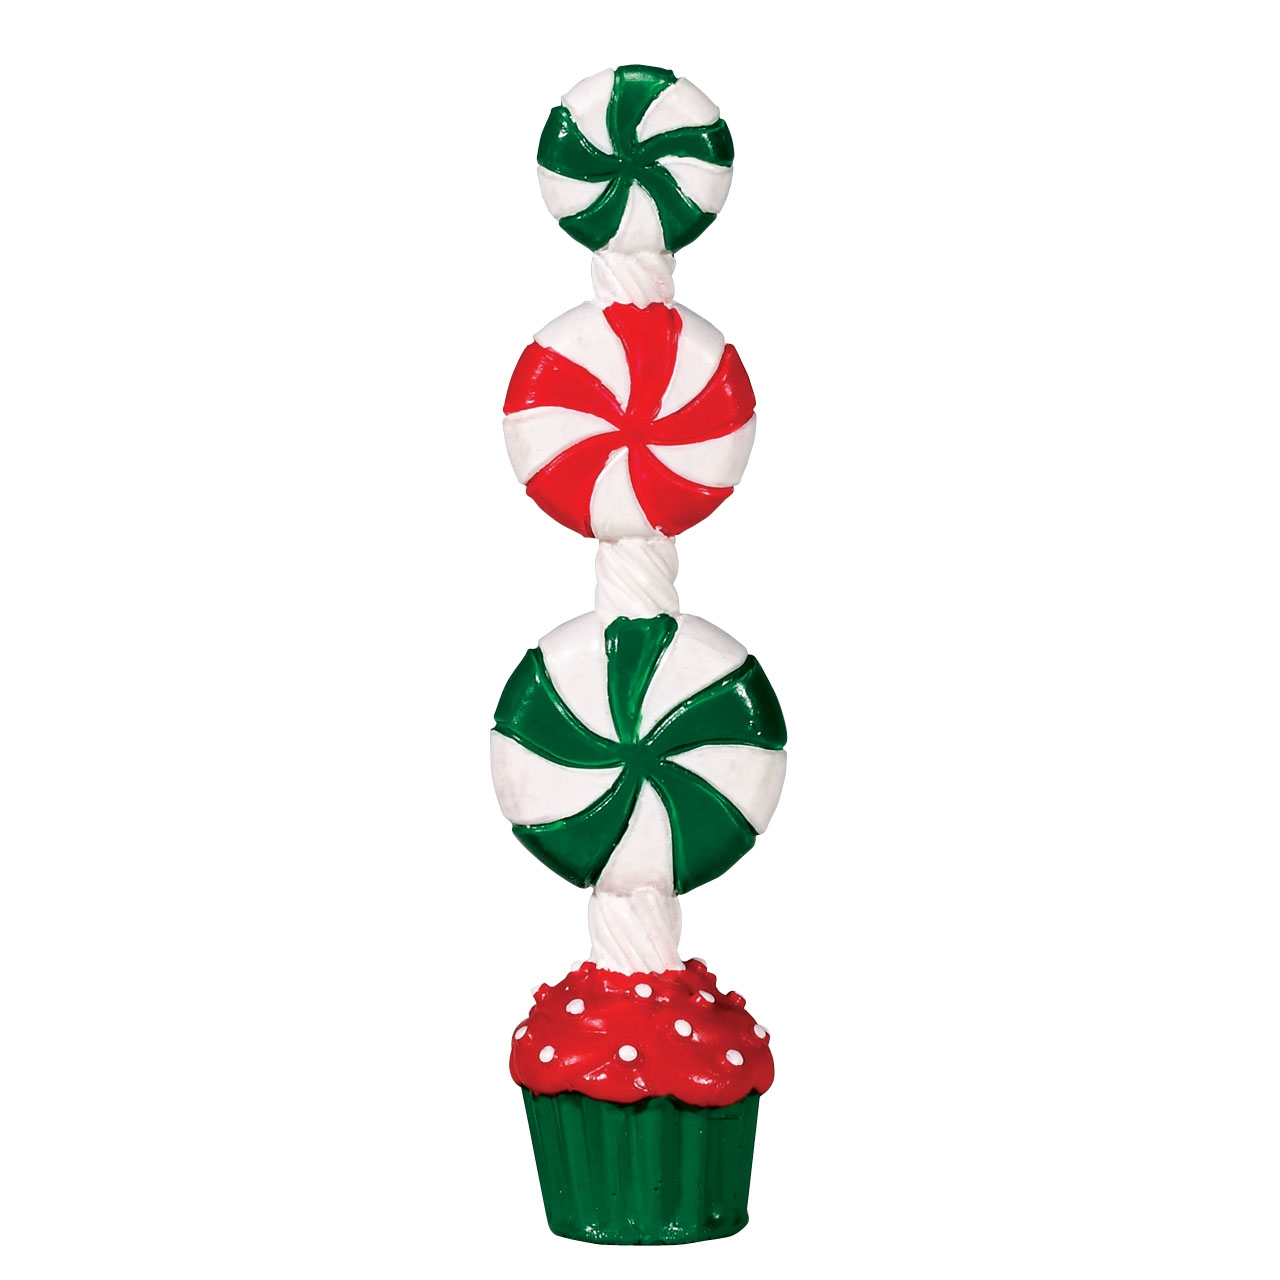 Peppermint Candy Topiary Lemax Christmas Village Accessory